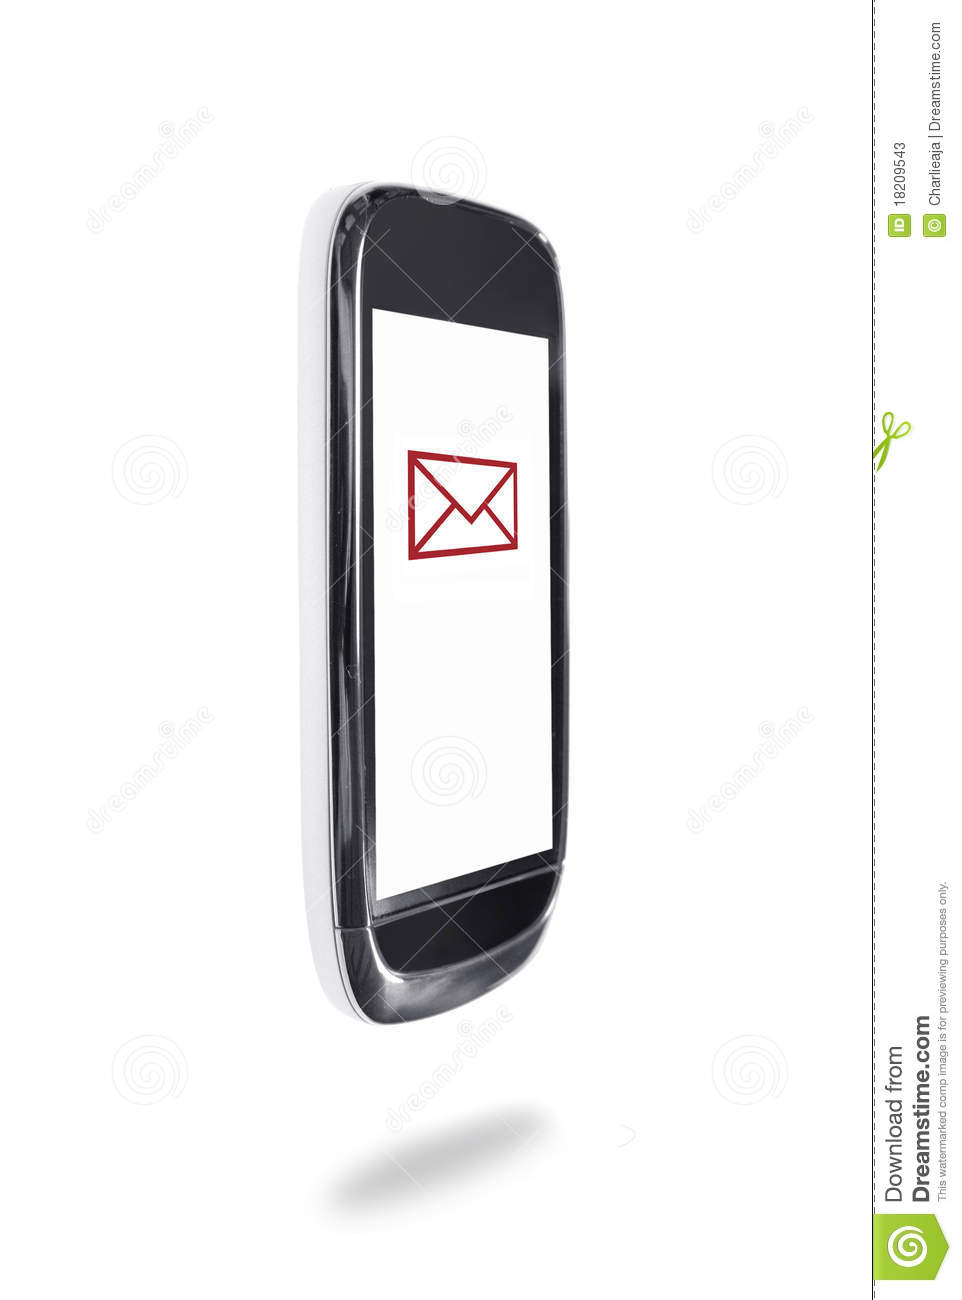 Mobile Phone Text Symbol Stock Image Image Of Envelope 18209543